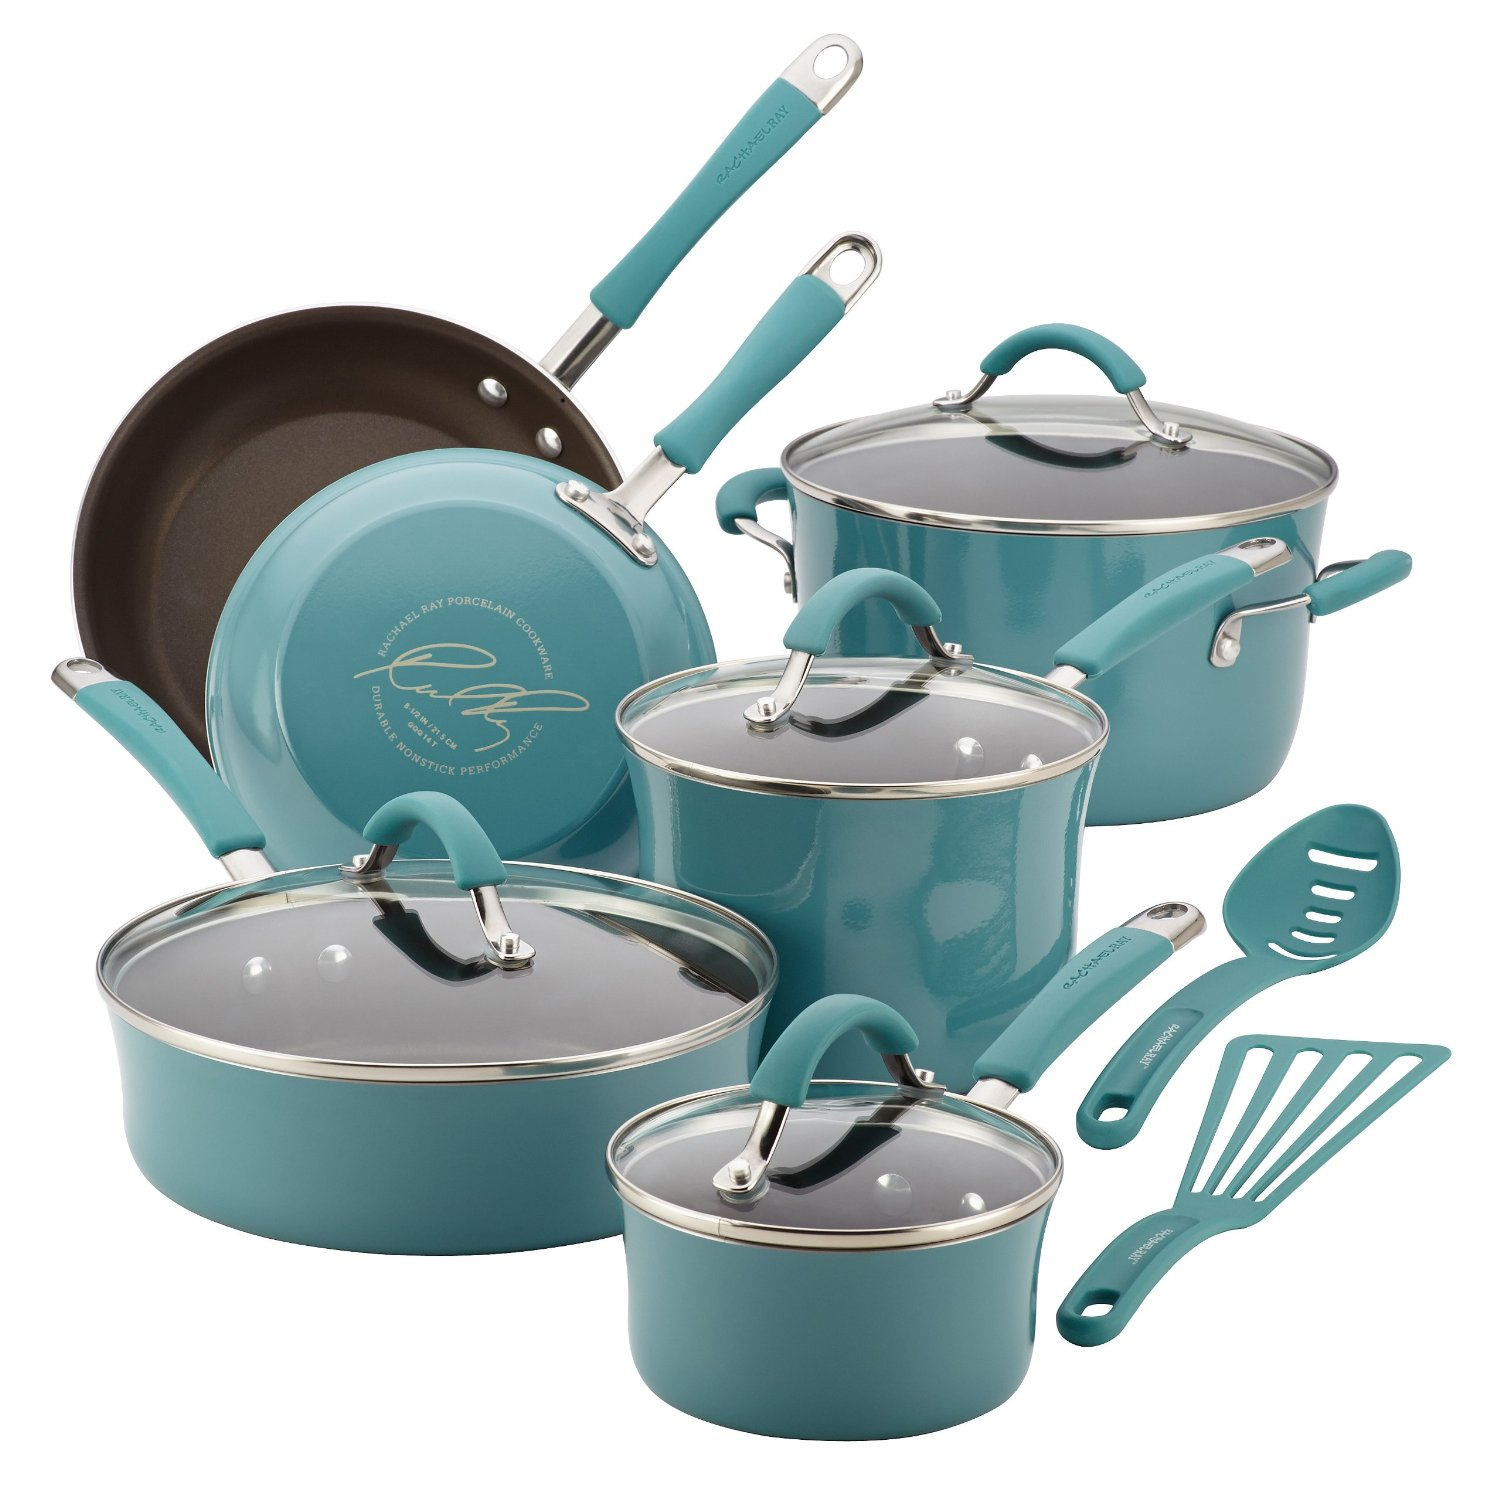 Rachael Ray Cucina Review Buy This Porcelain Cookware